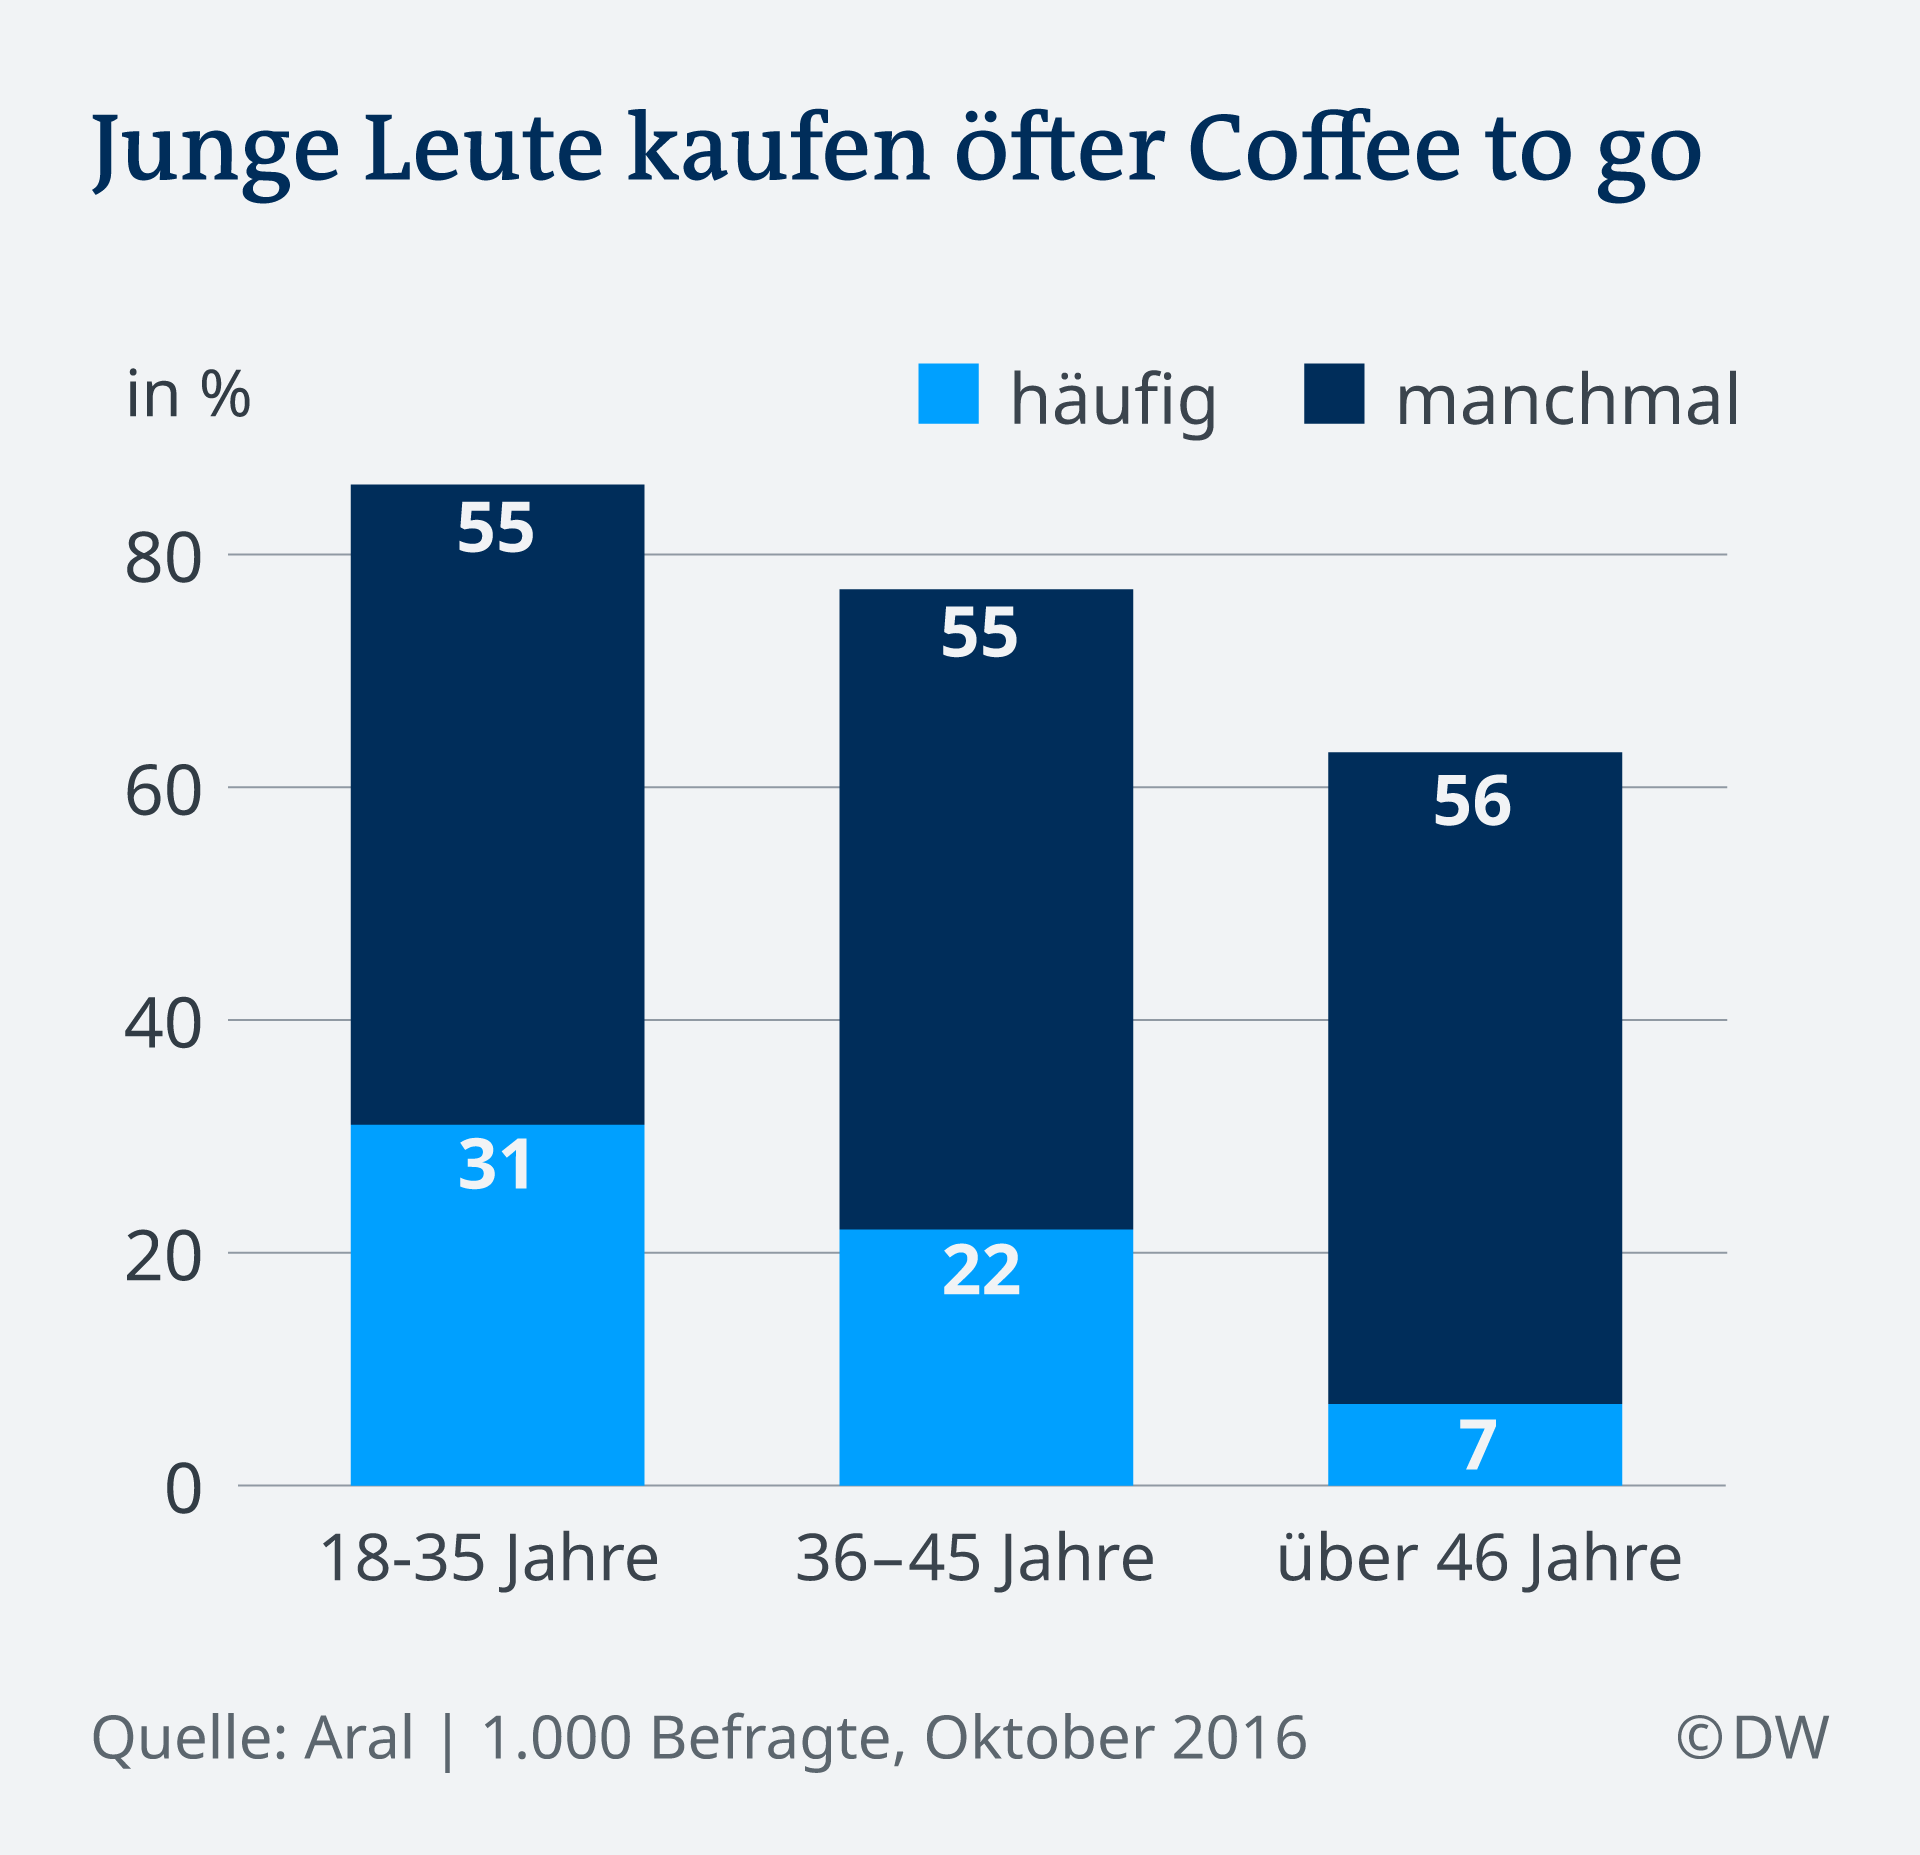 Infografik Coffee to go-Kauf nach Altersgruppen